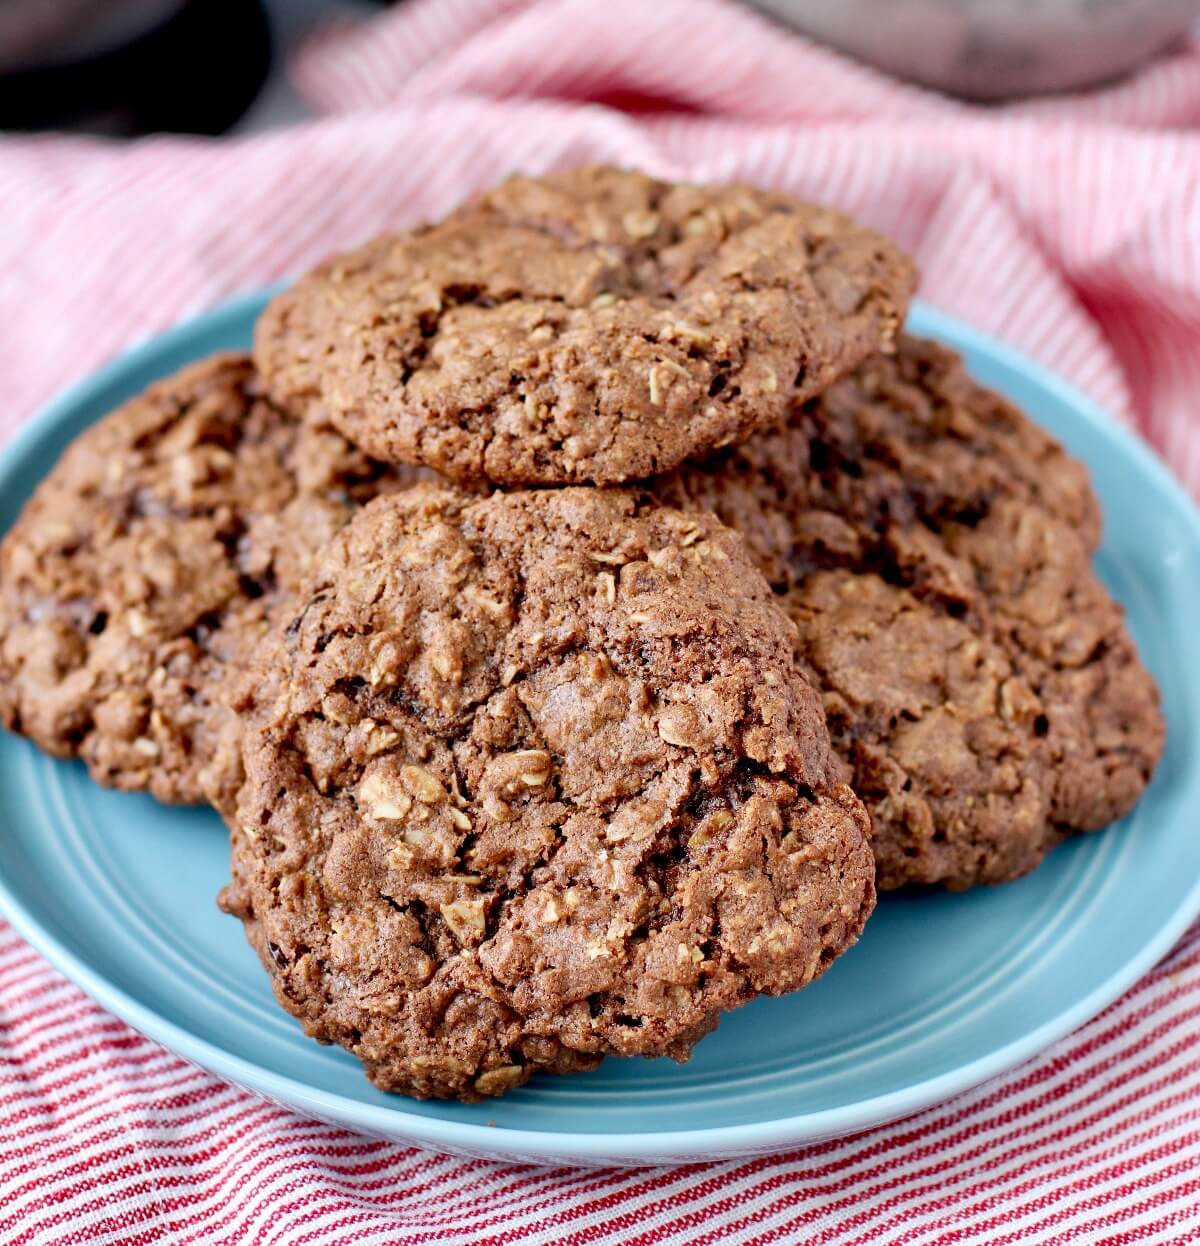 Chocolate and dried Cherry Oatmeal Cookies